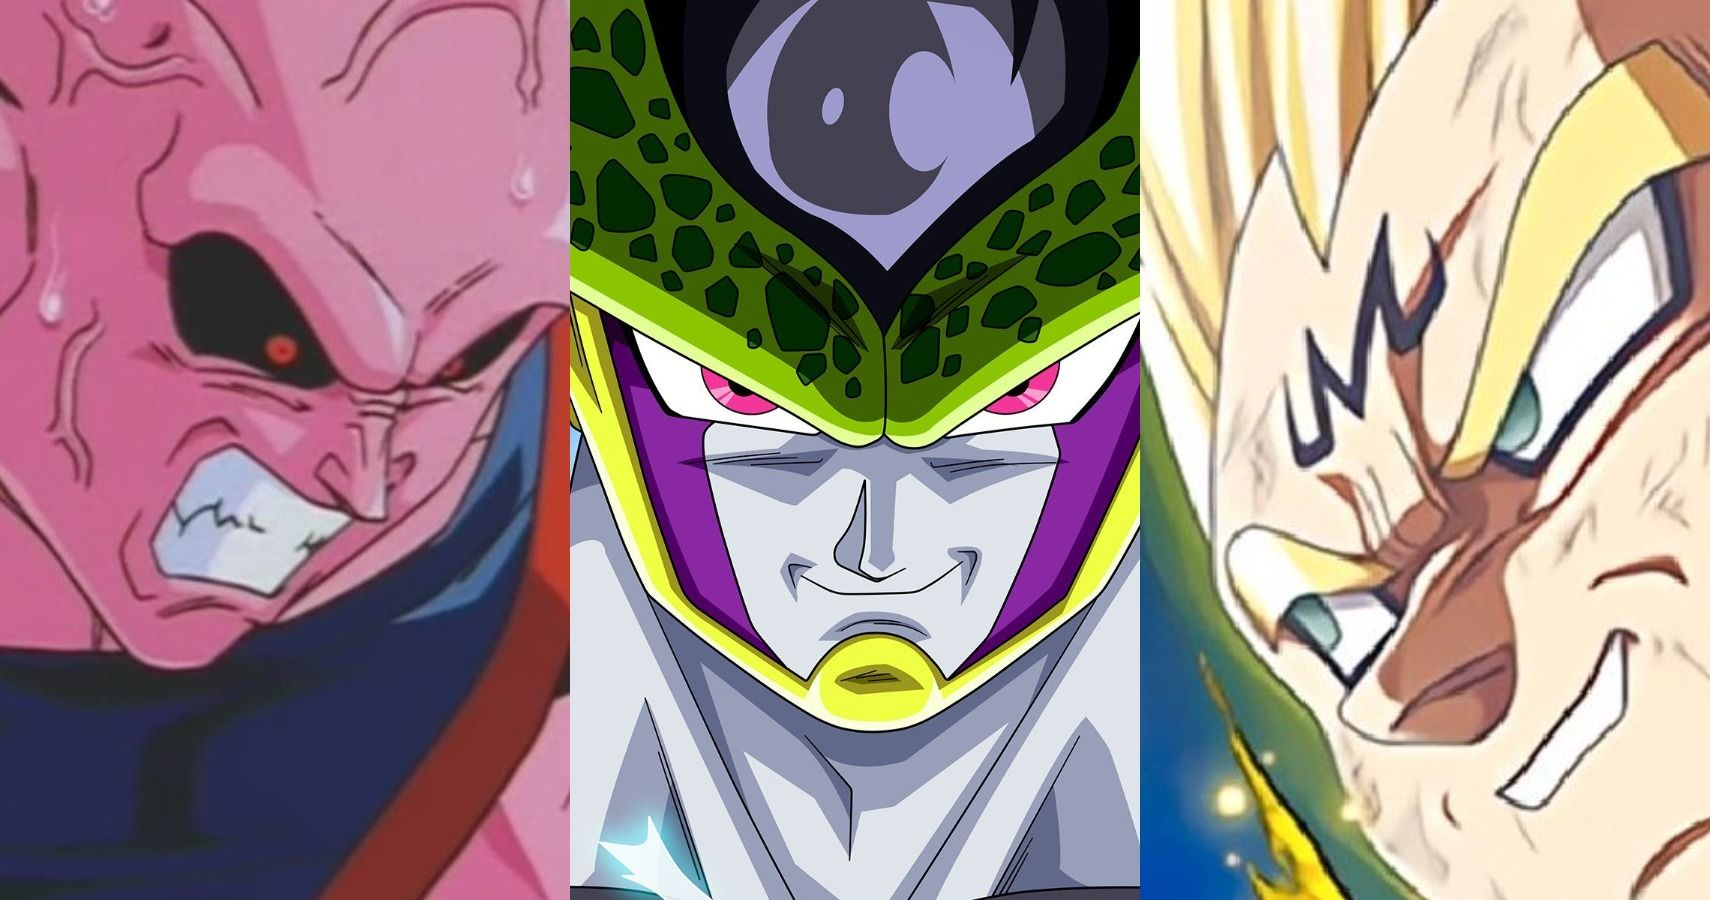 Dragon Ball 5 Great Match Ups We Never Got 5 That We Don T Even Remember We Did The star powers his battle against piccolo, krillin, and gohan. dragon ball 5 great match ups we never